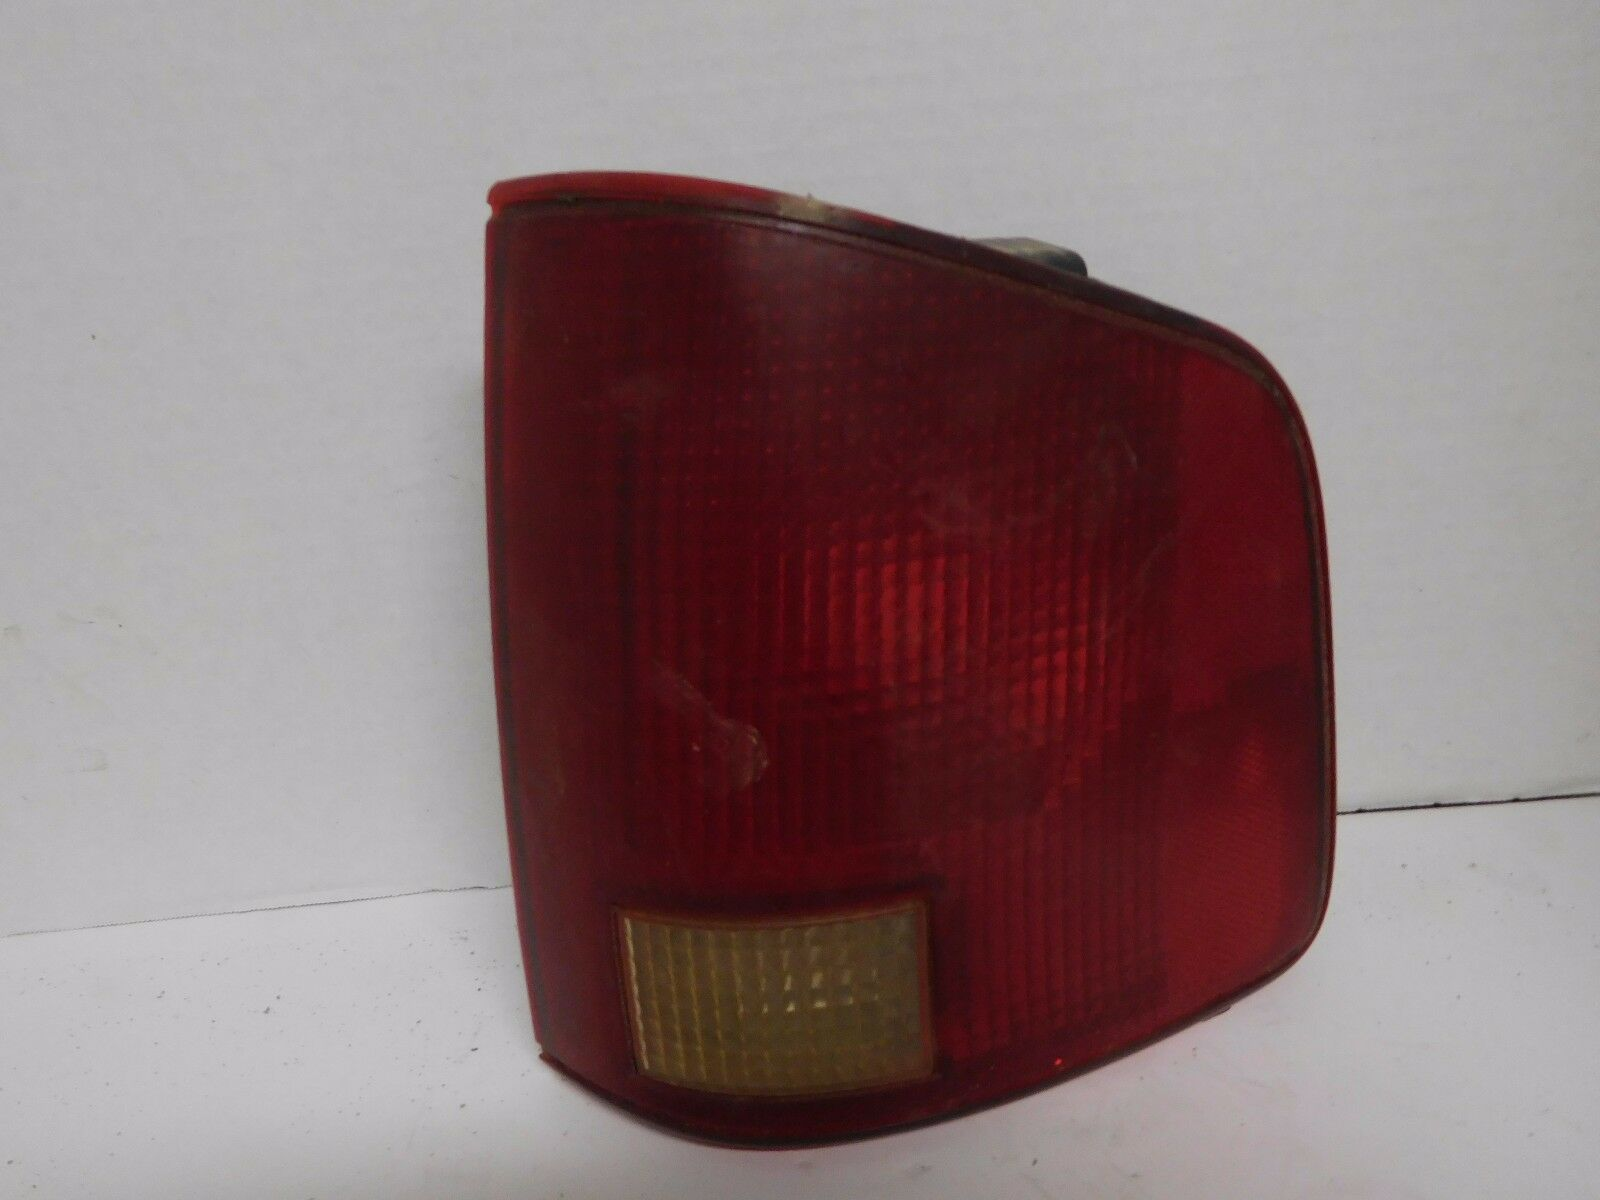 1994 - 2000 2001 2002 2003 CHEVROLET S10 / GMC SONOMA RH TAIL LIGHT OEM A0406